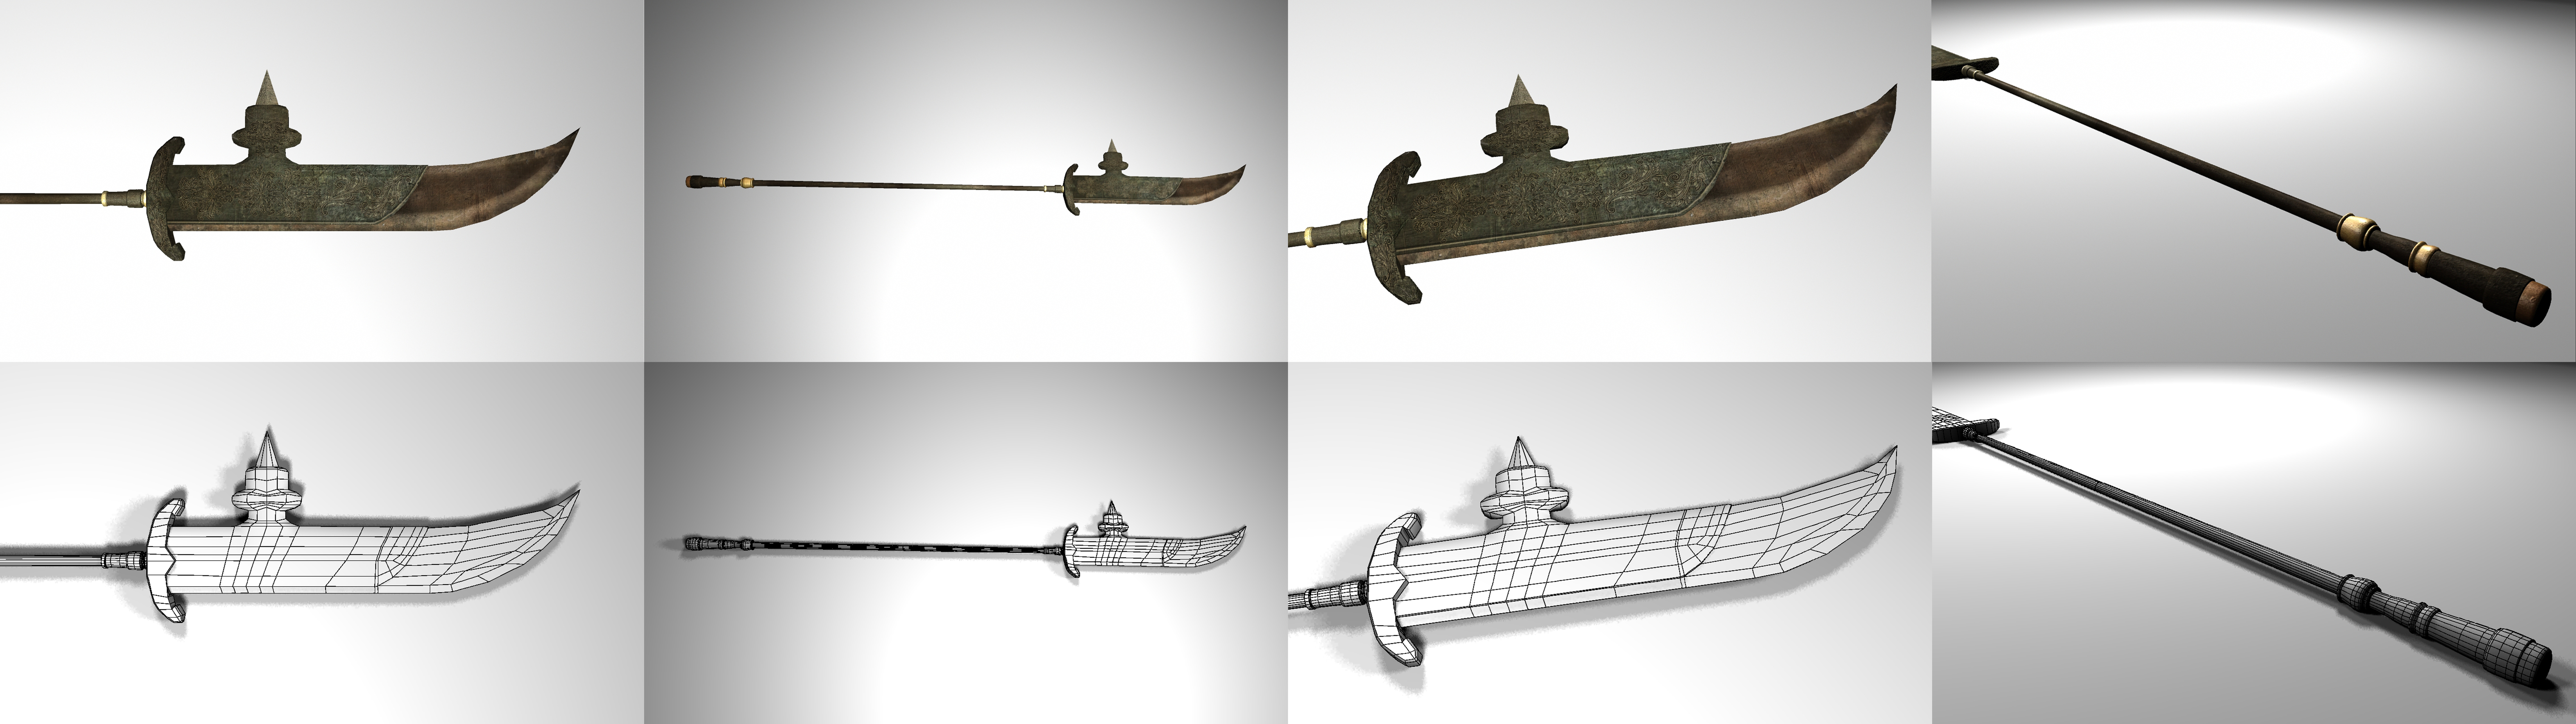 Lightning Black Knight Halberd Dark Knight Halberd Aiv Project Compilation By Sketchychris